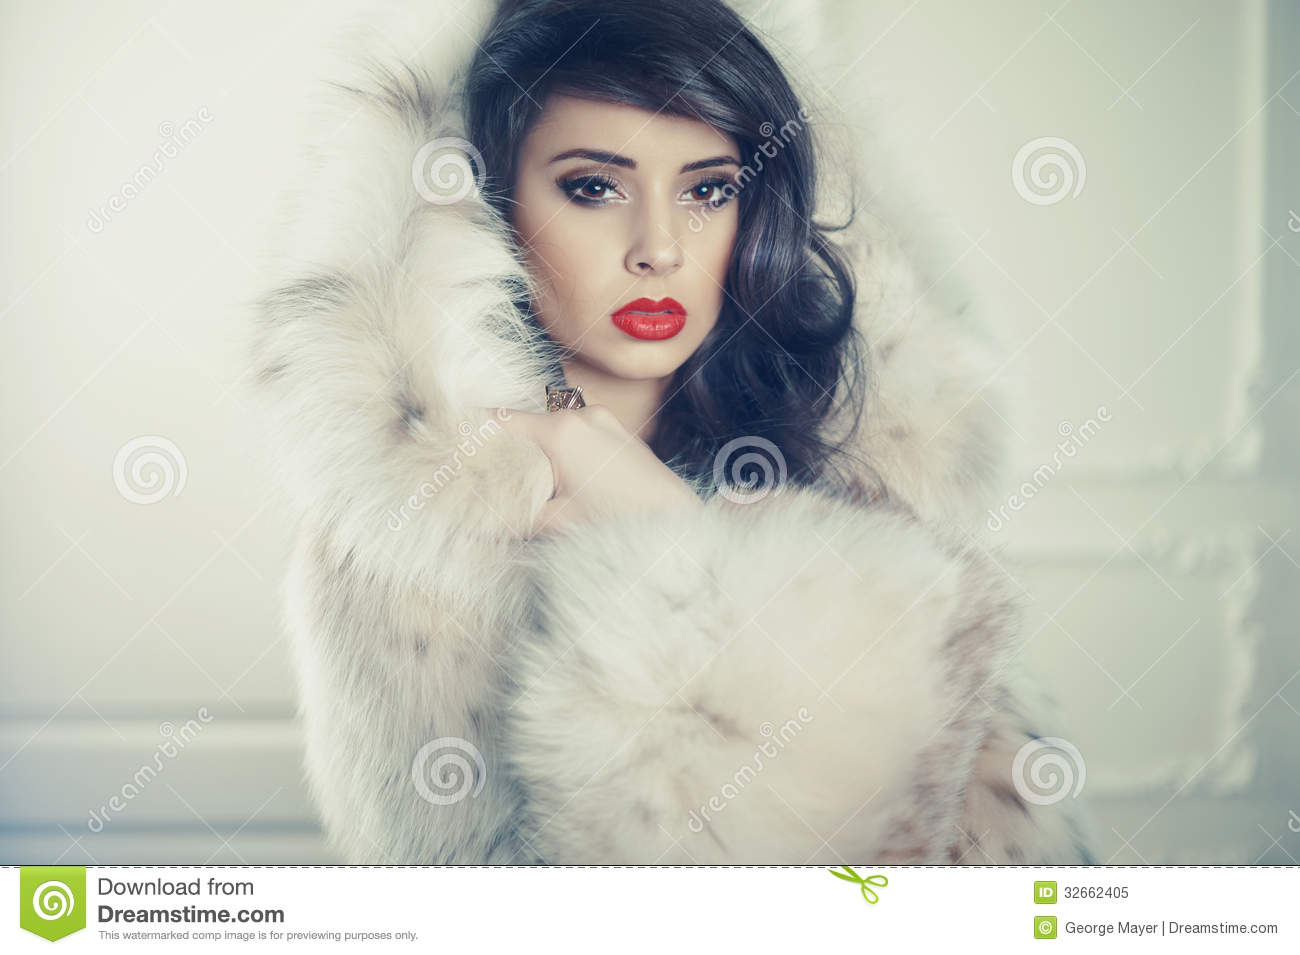 Lady In Luxurious Fur Coat Stock Photography - Image: 32662402